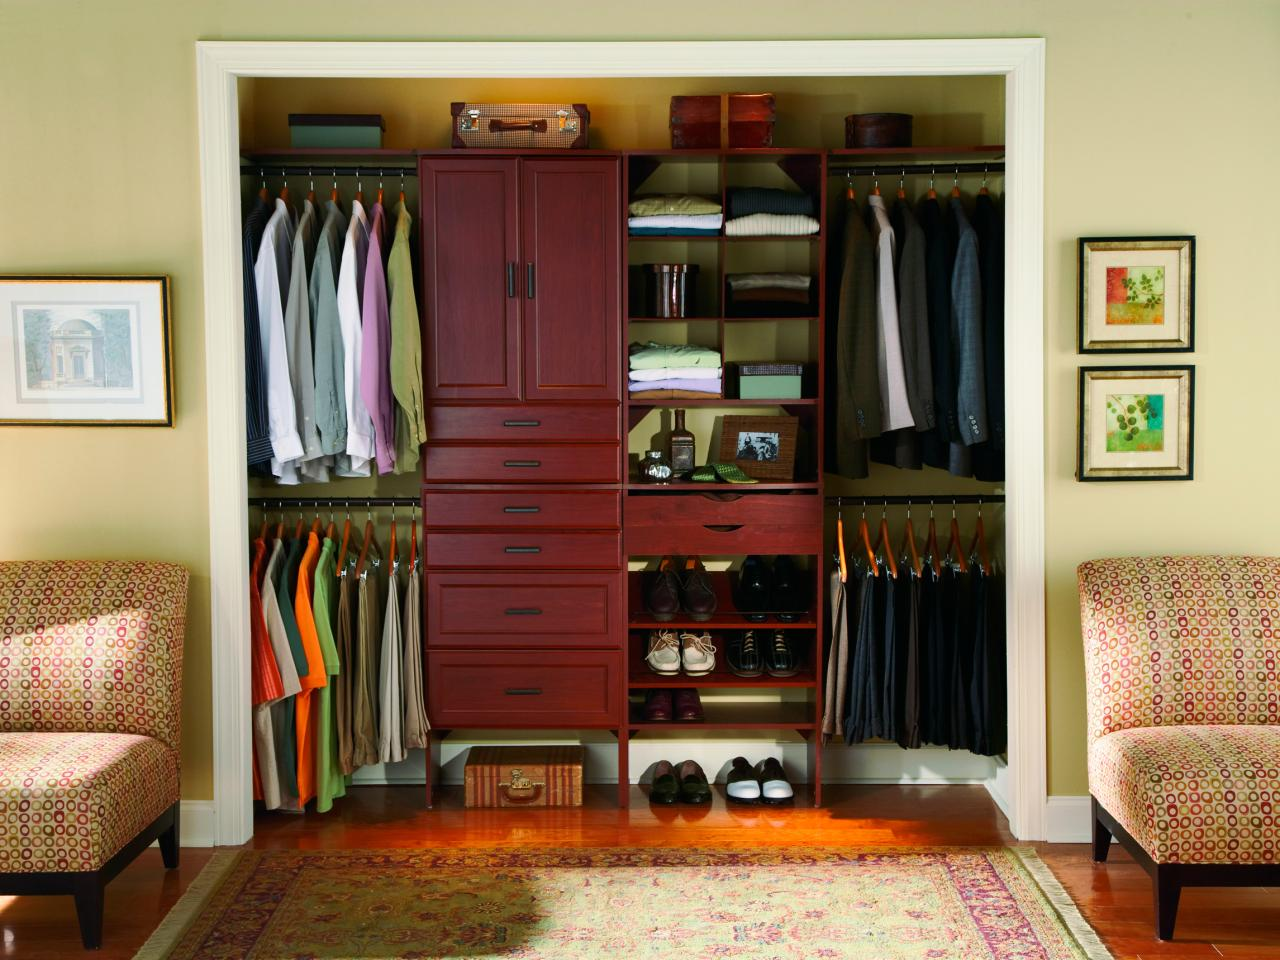 mens closet ideas and options - Custom Closet Design Ideas